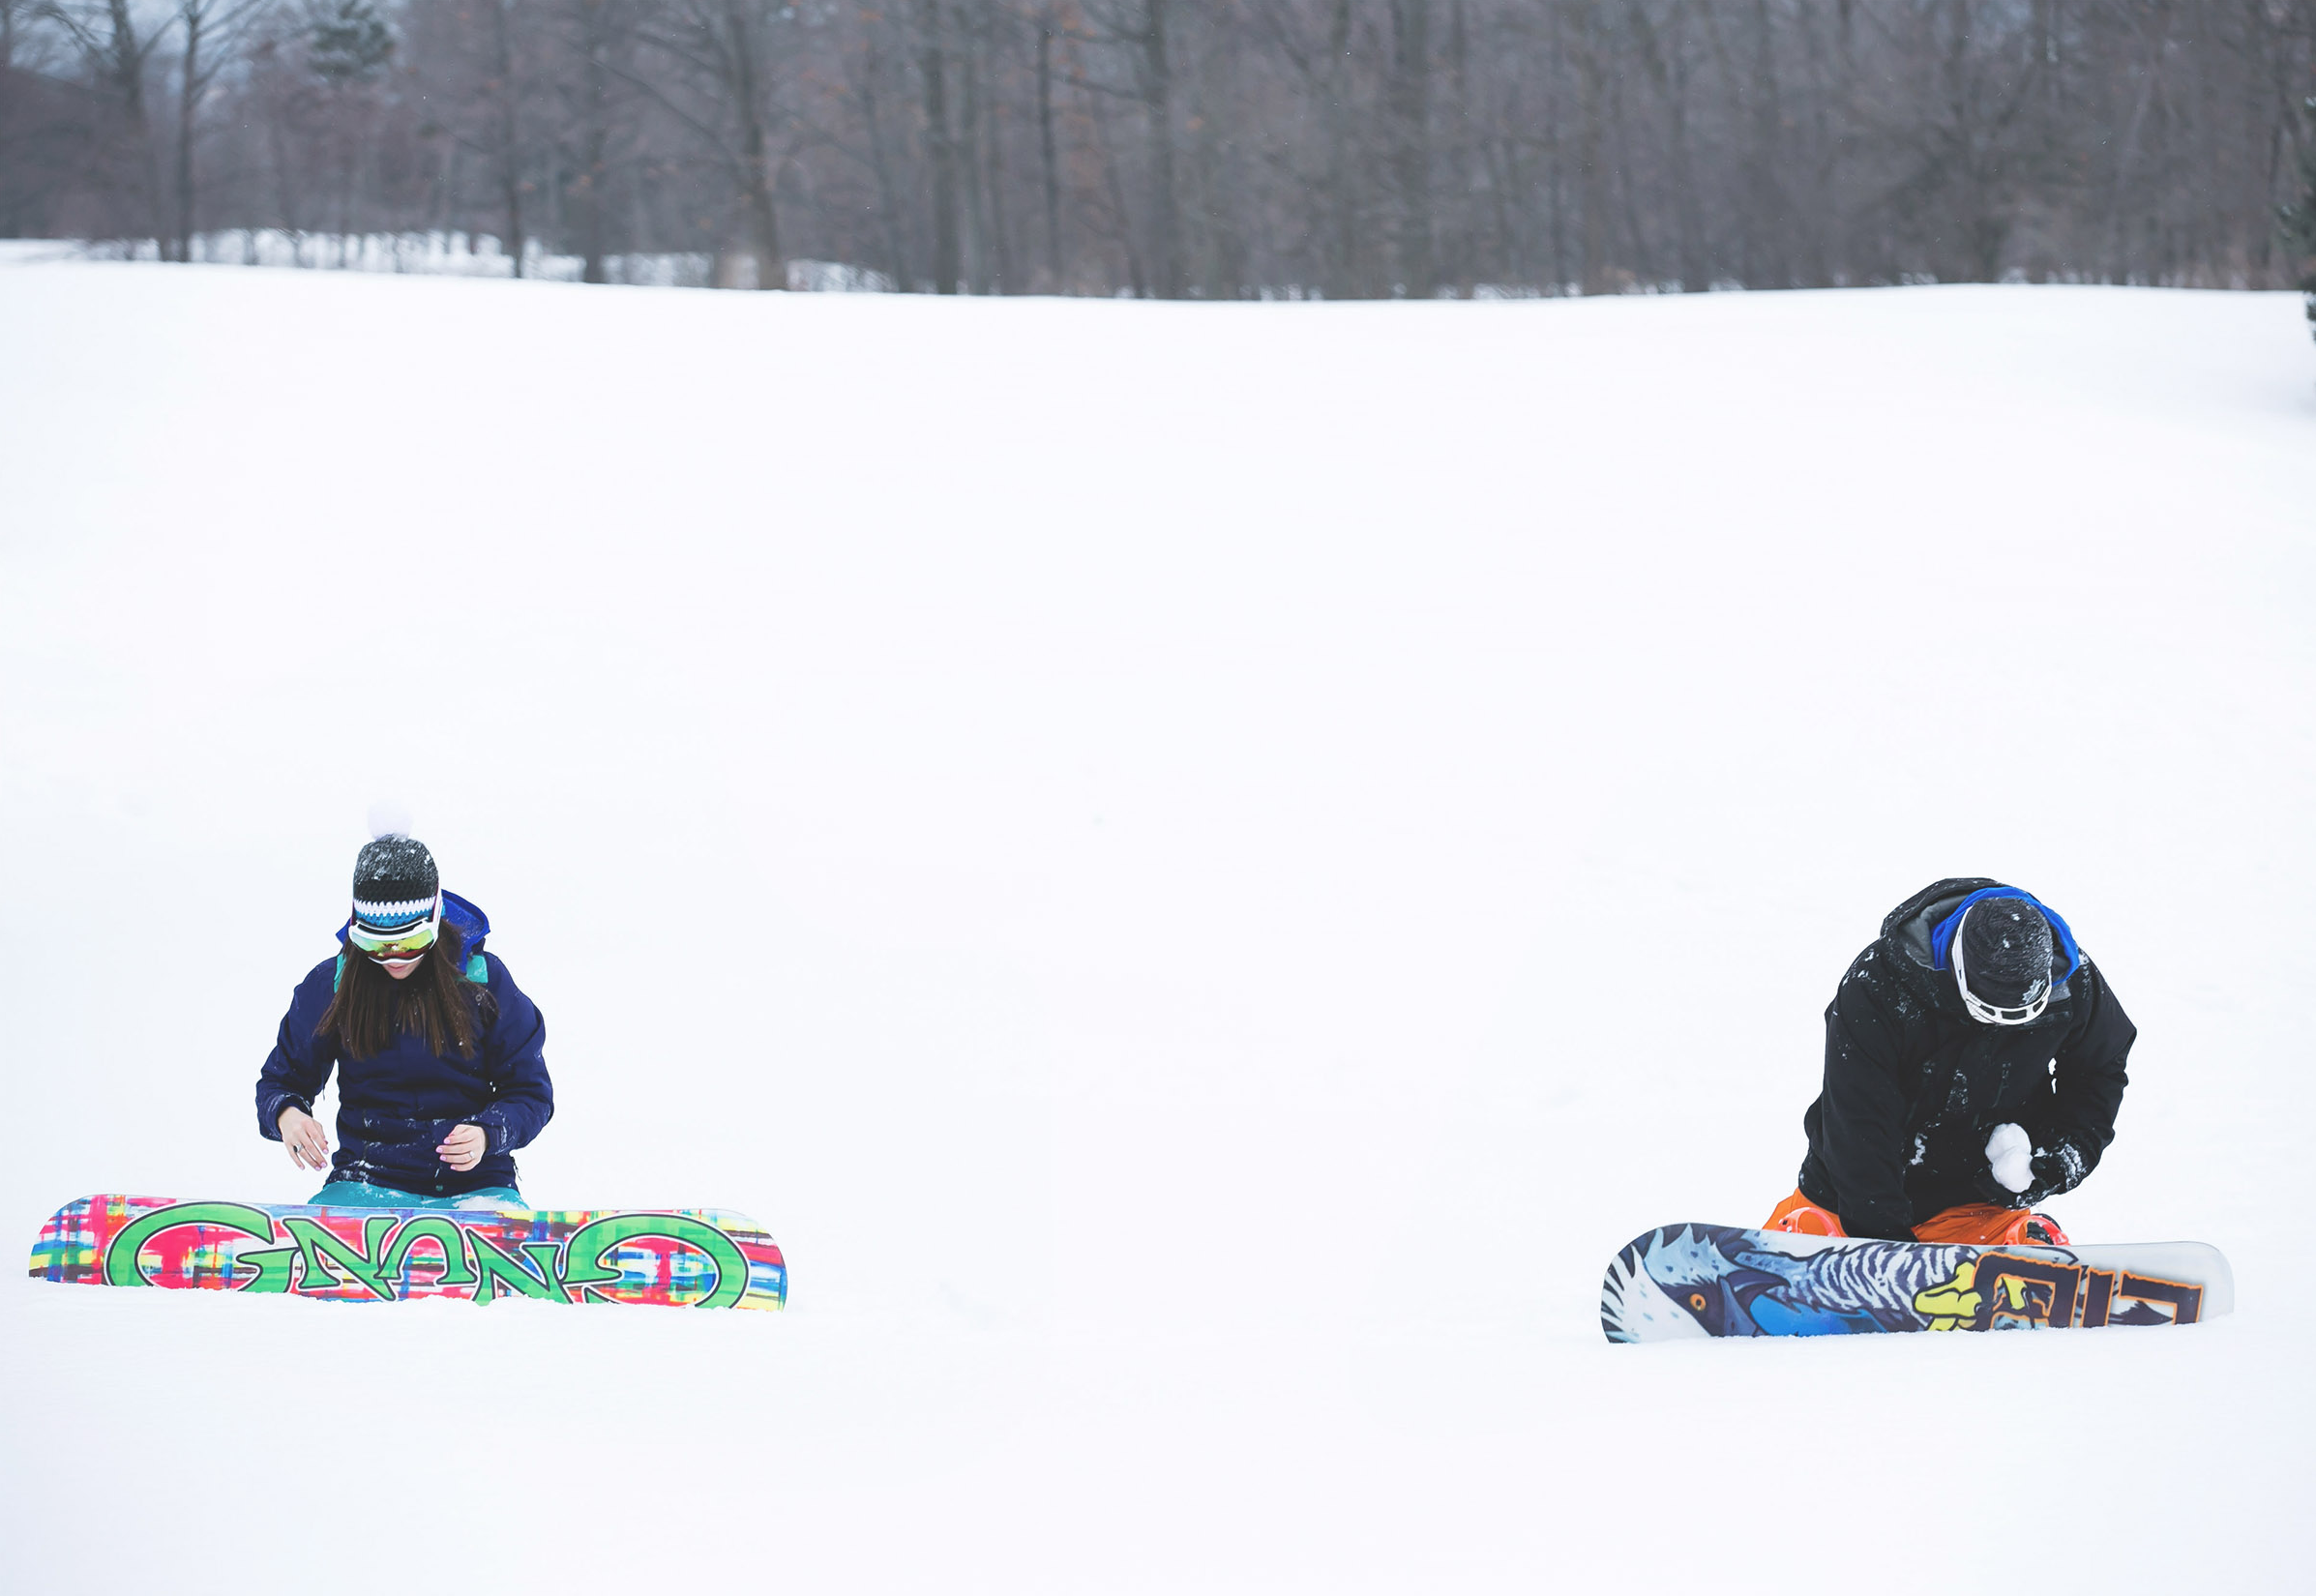 Engagement-Photos-Hamilton-Niagara-Toronto-Burlington-Oakville-Photographer-Engaged-Ring-Photography-Snowboarding-Winter-Moments-by-Lauren-Image-16.png